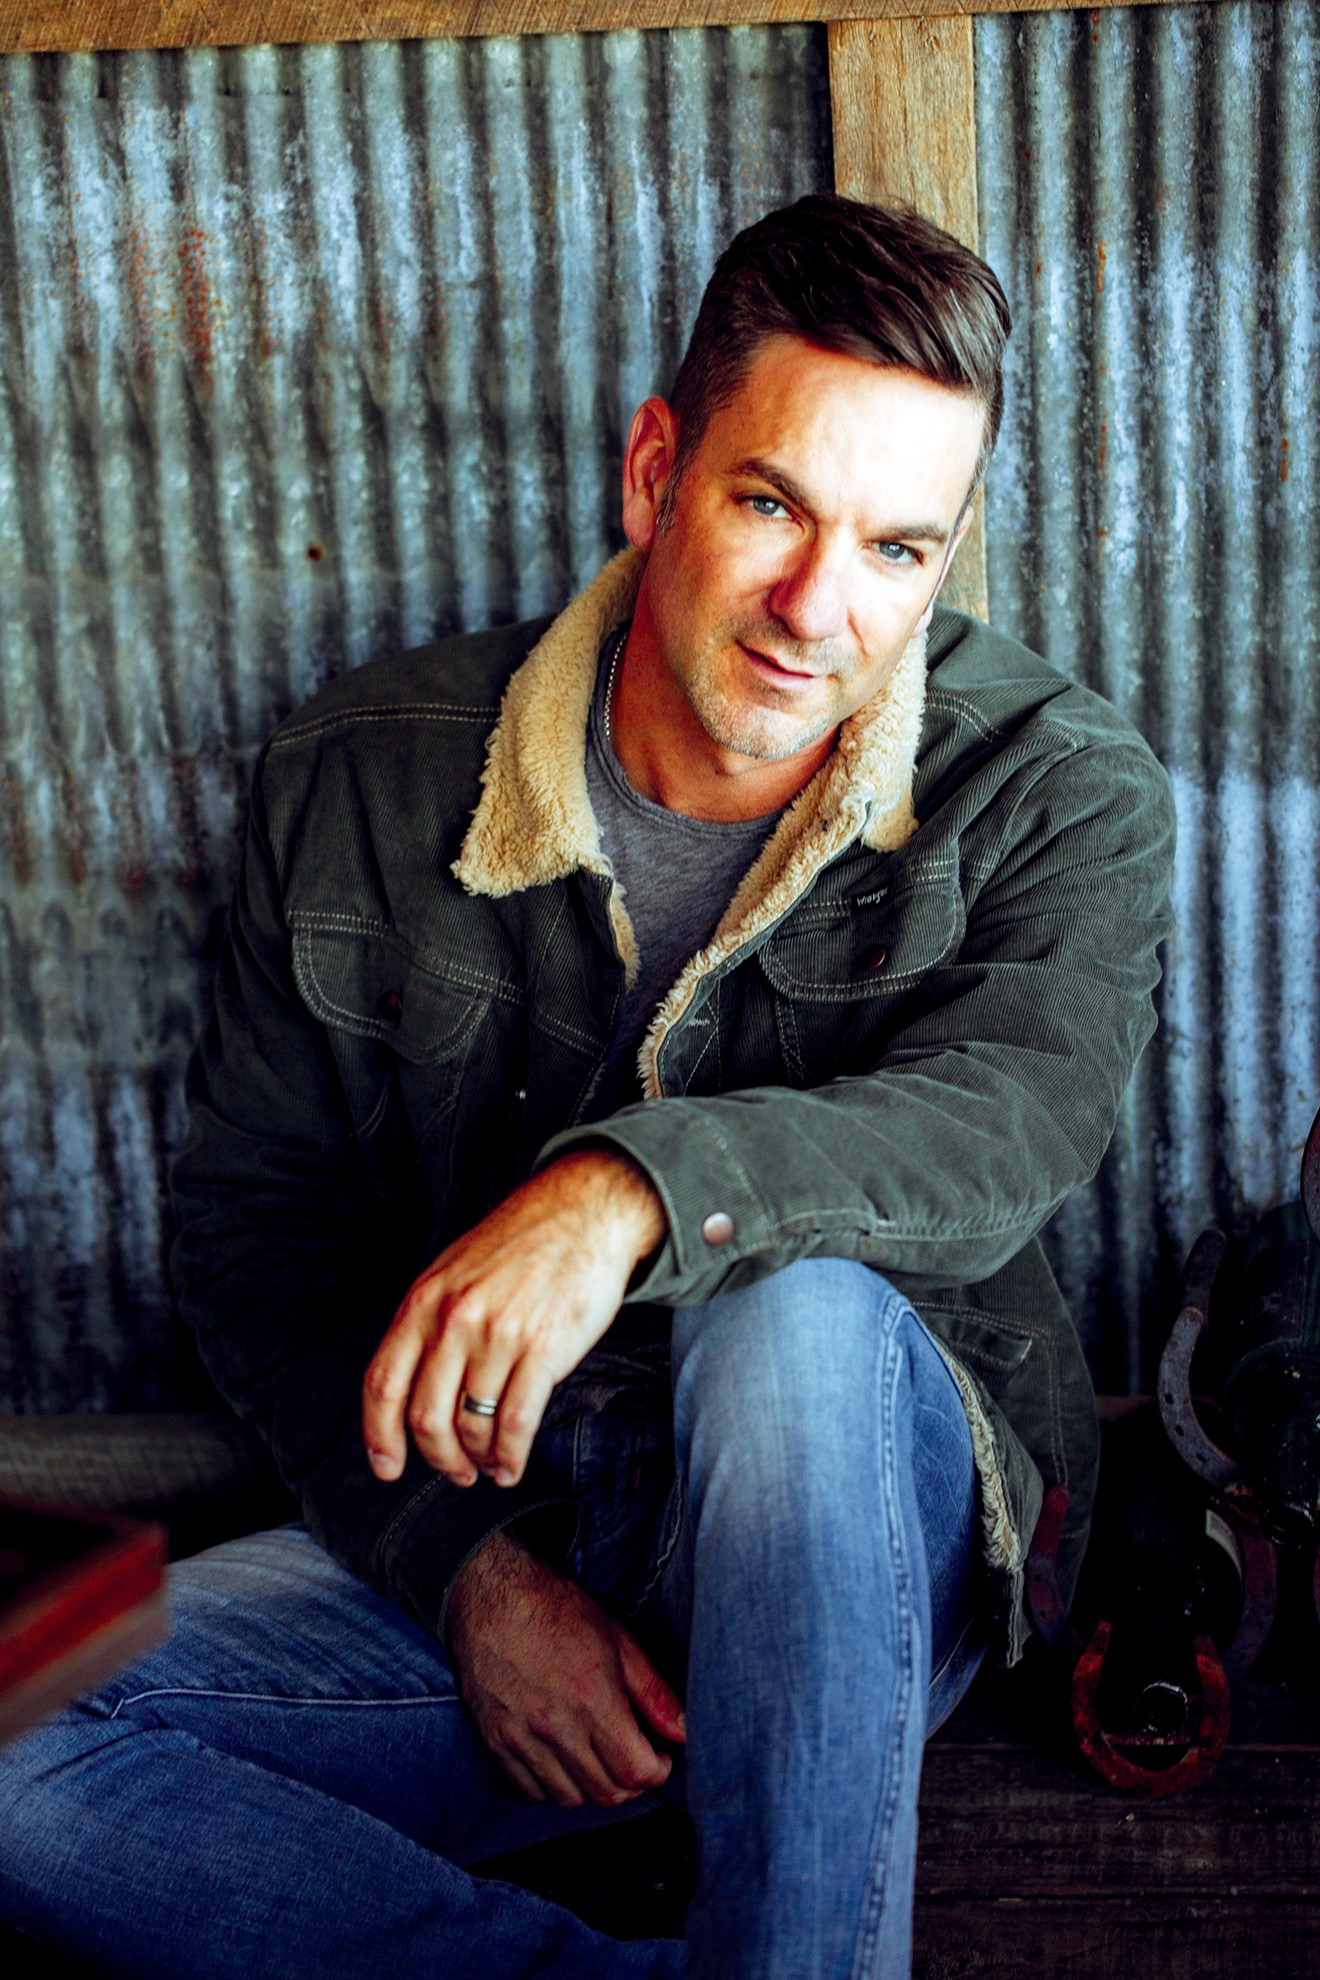 Craig Campbell takes a seat during the pandemic, but looks forward to being on stage Aug. 12 at Savannah's Victory North.